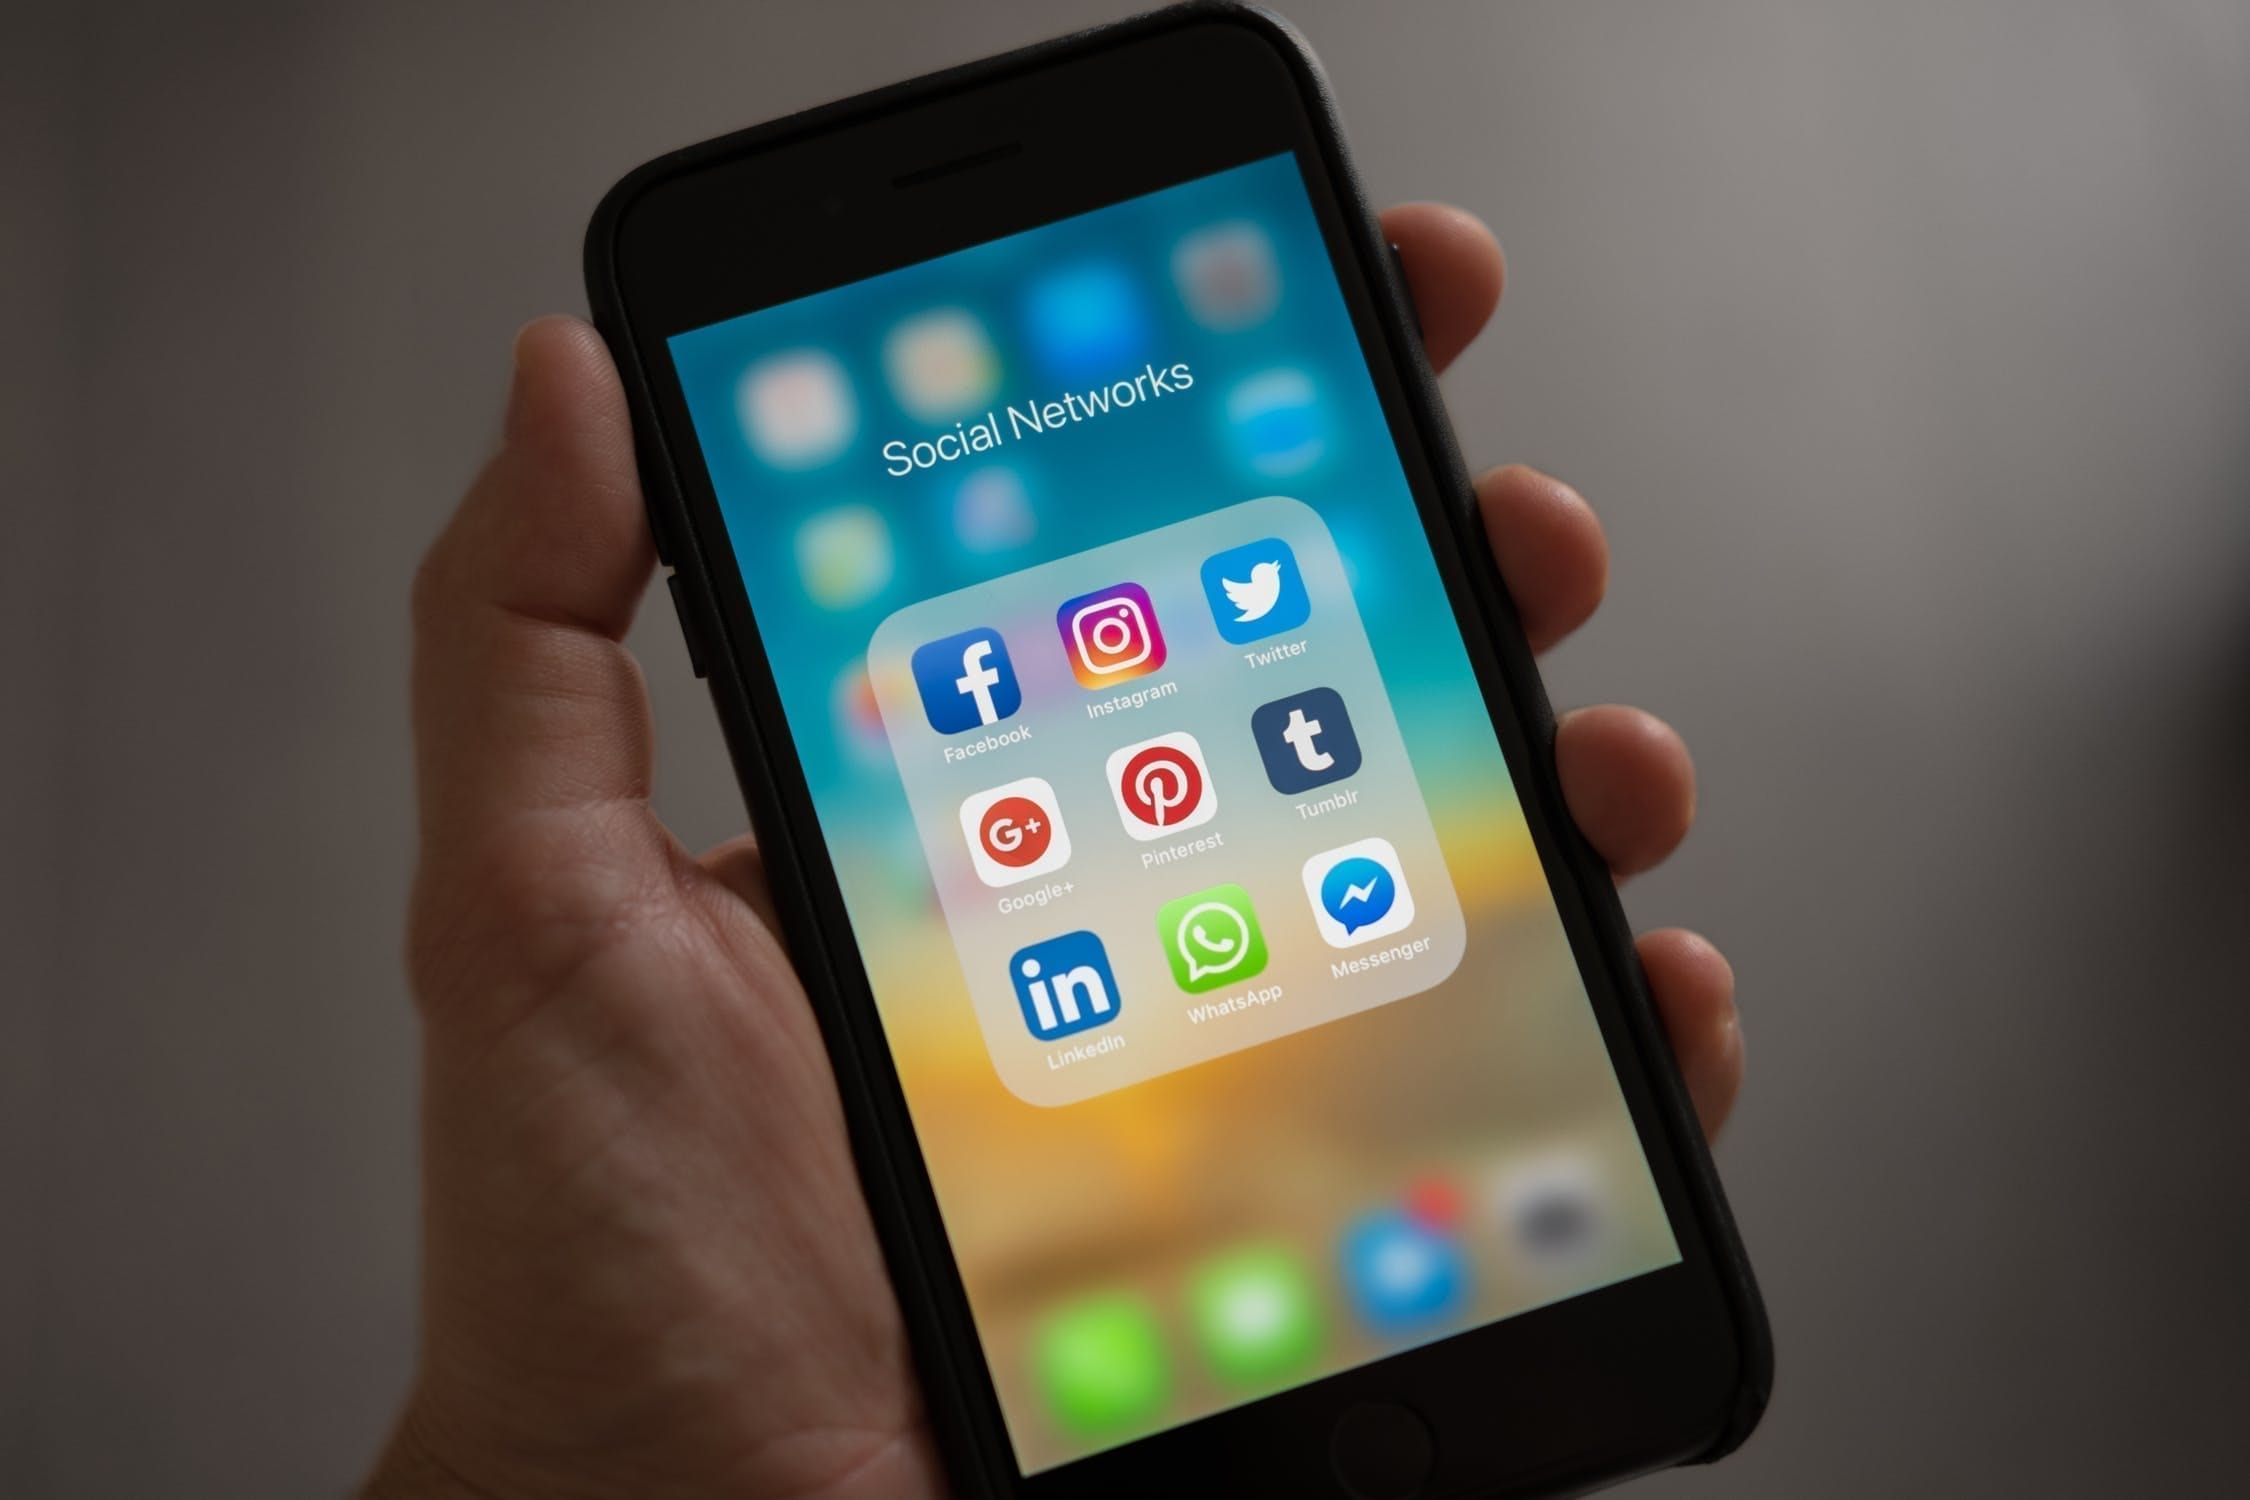 Your Business Isn't on Social Yet? Don't Wait Any Longer!